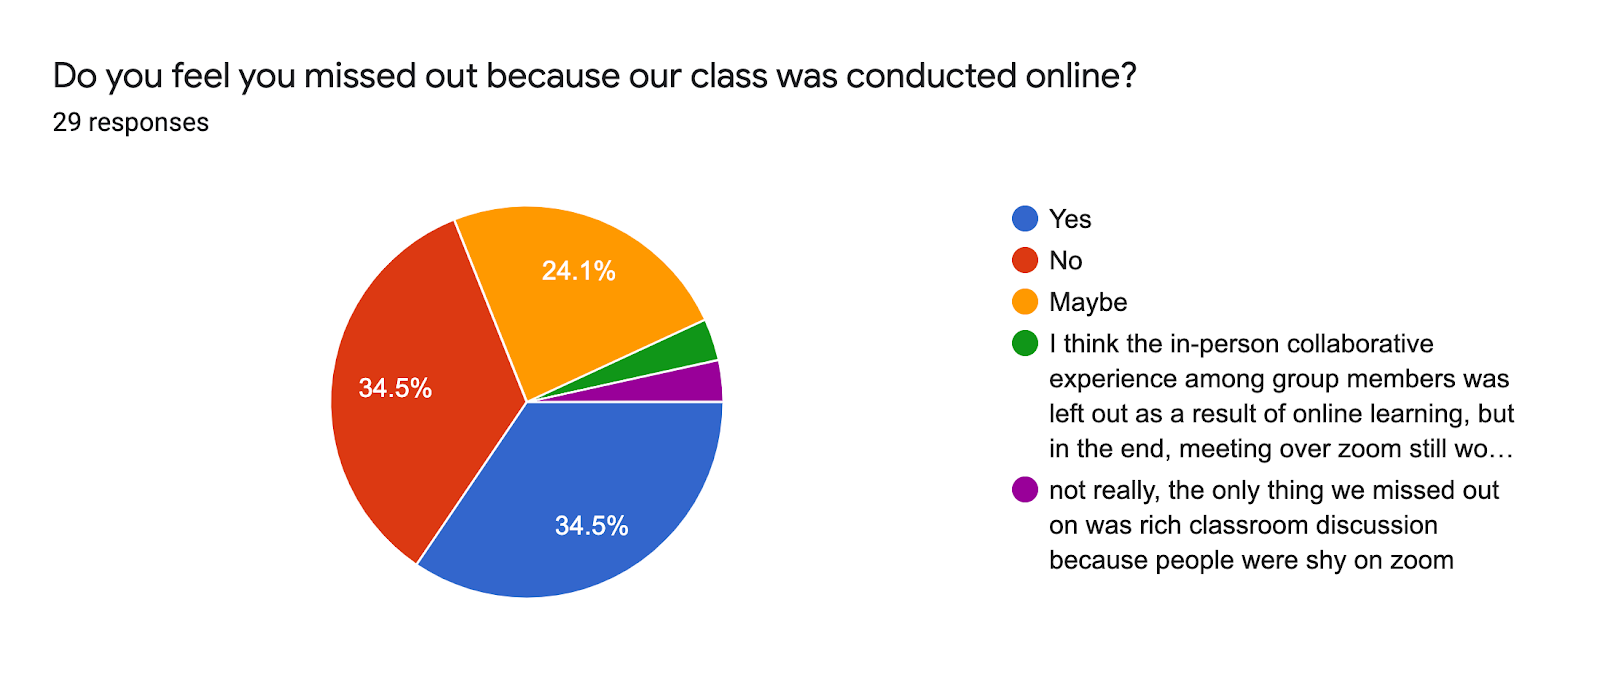 Forms response chart. Question title: Do you feel you missed out because our class was conducted online?. Number of responses: 29 responses.